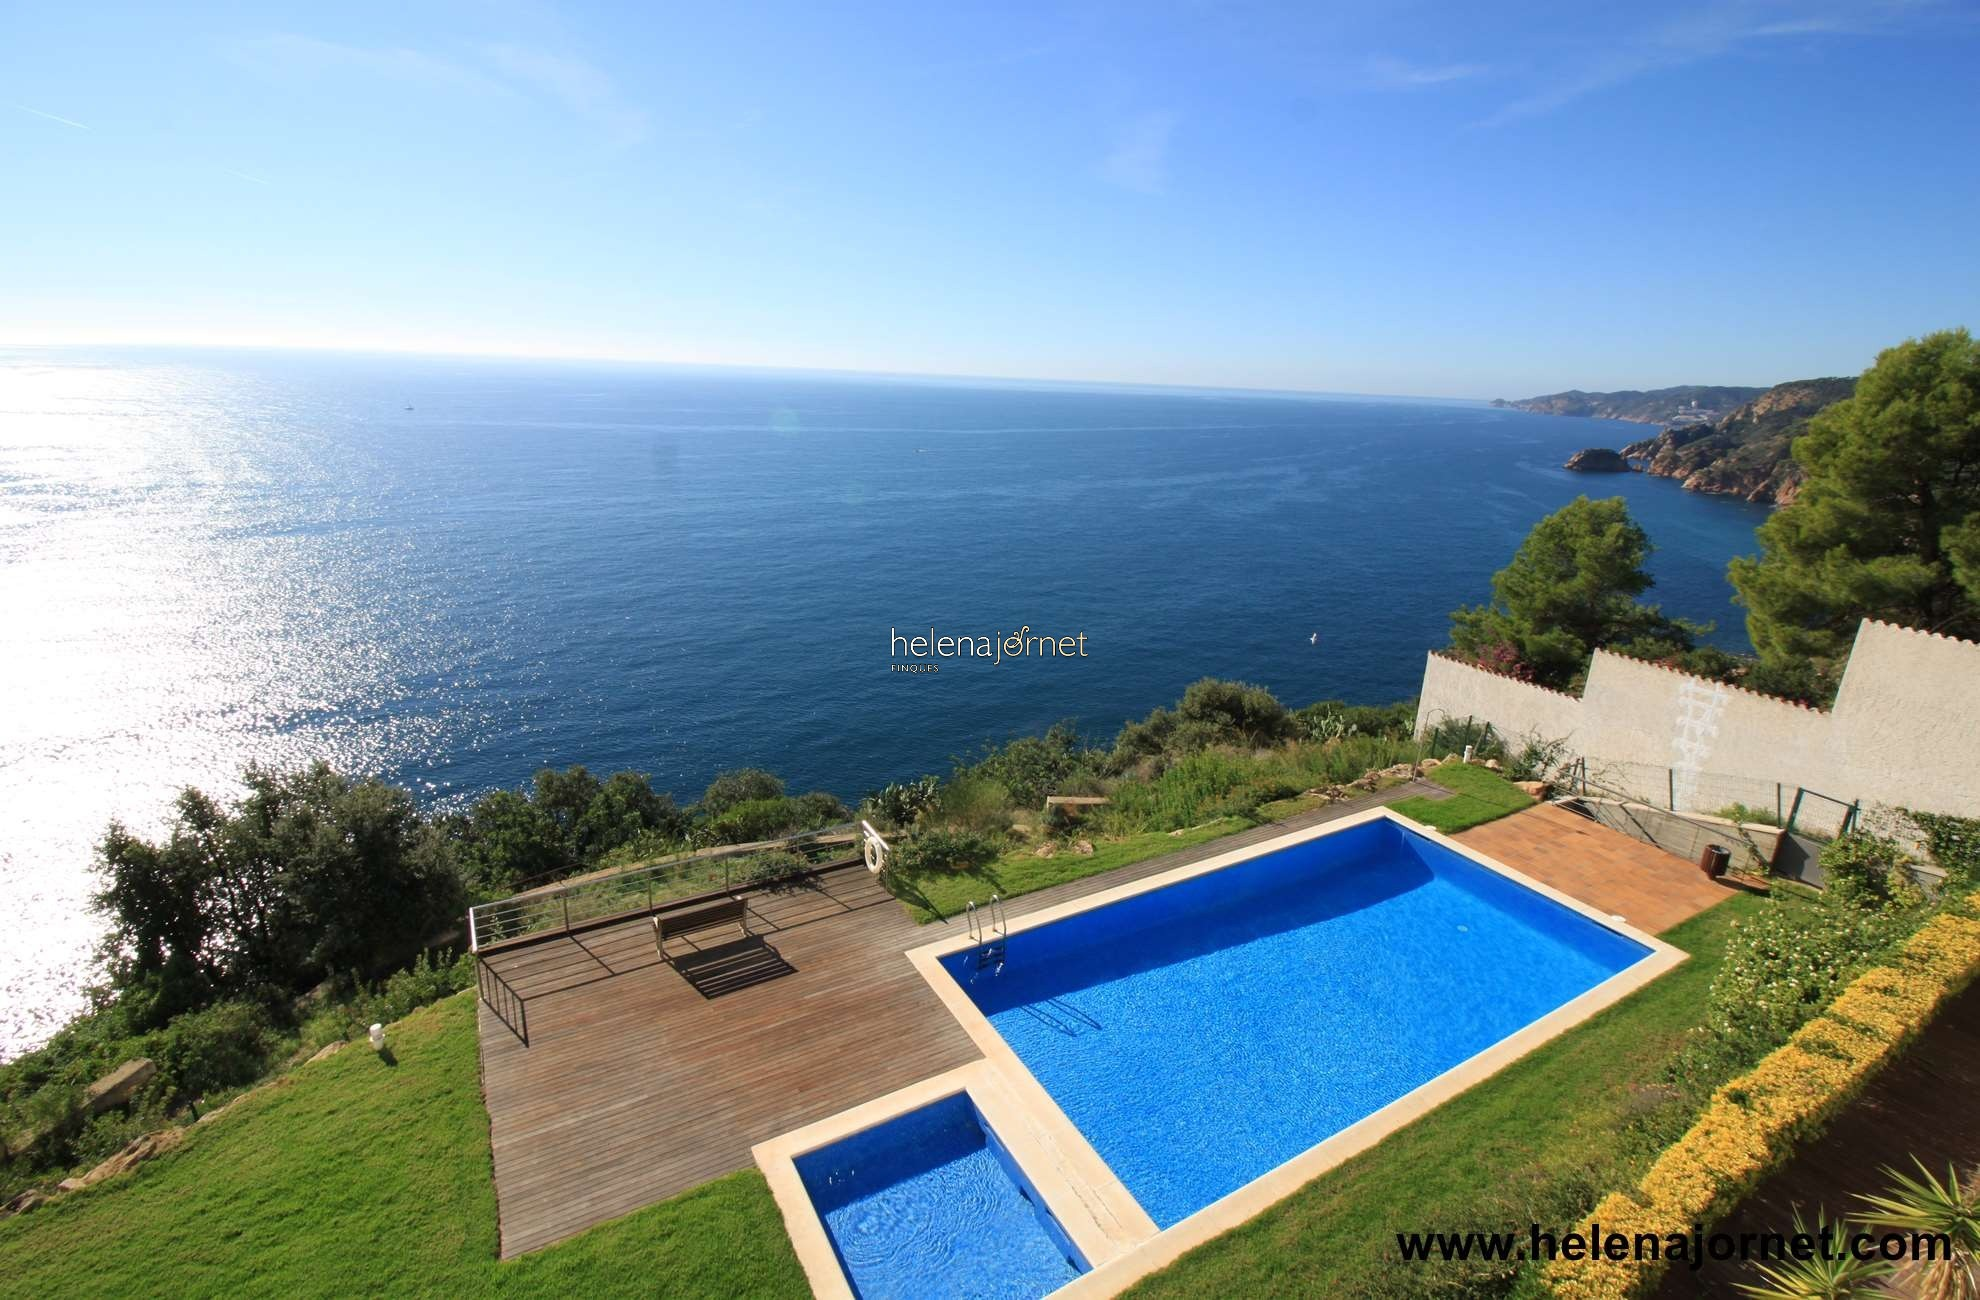 Apartment designed to enjoy the COSTA BRAVA - 70008 Atalaya